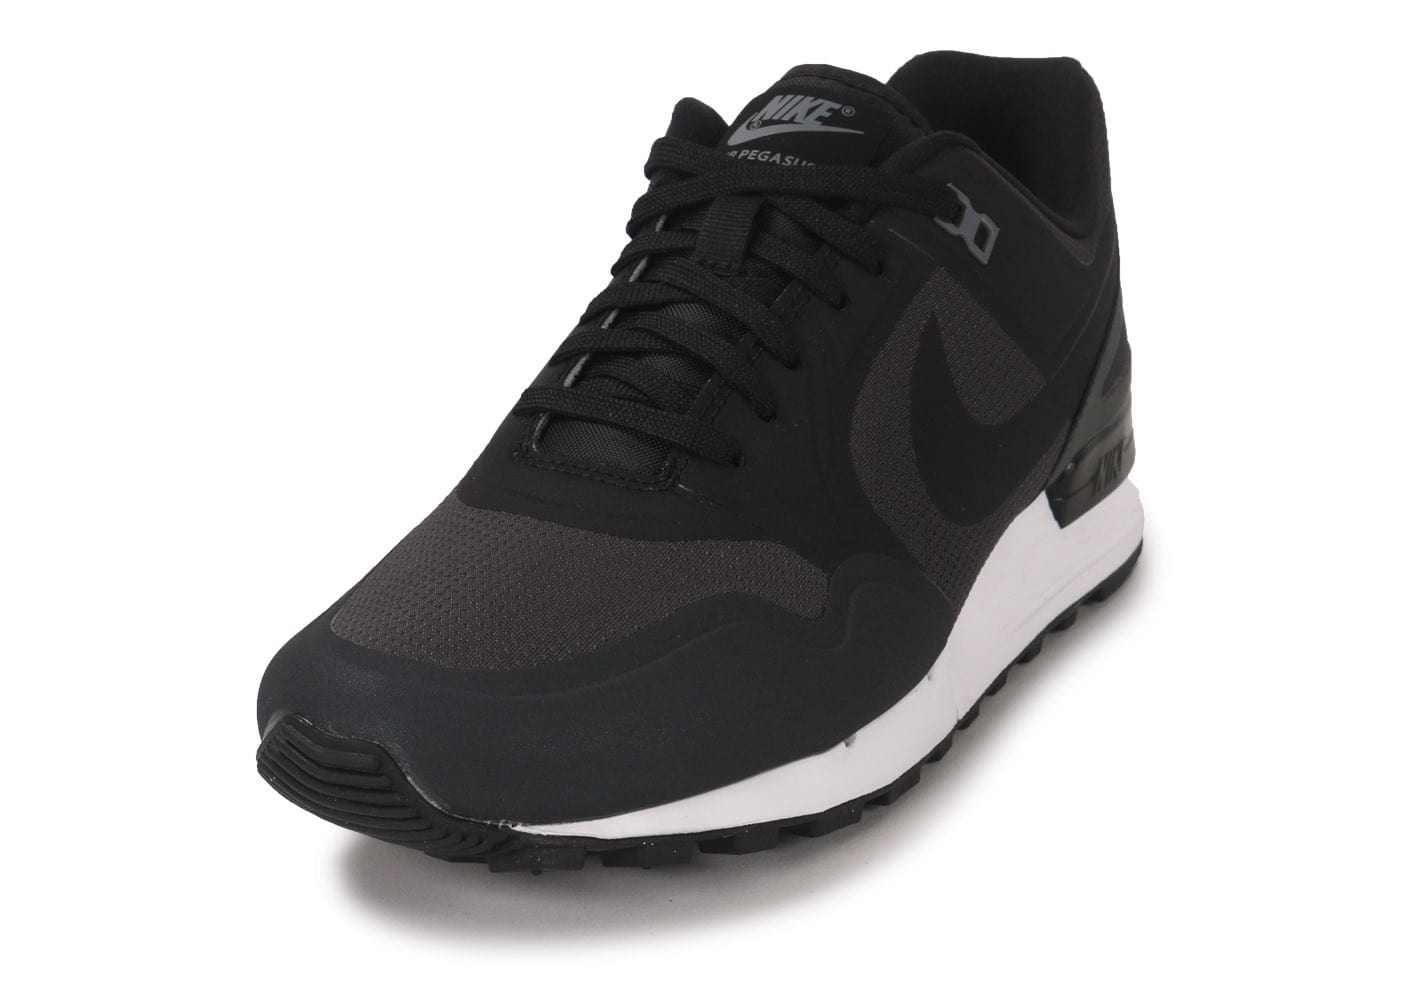 low priced dca77 e1ad0 ... Chaussures Nike Air Pegasus 89 No Sew grise vue avant ...